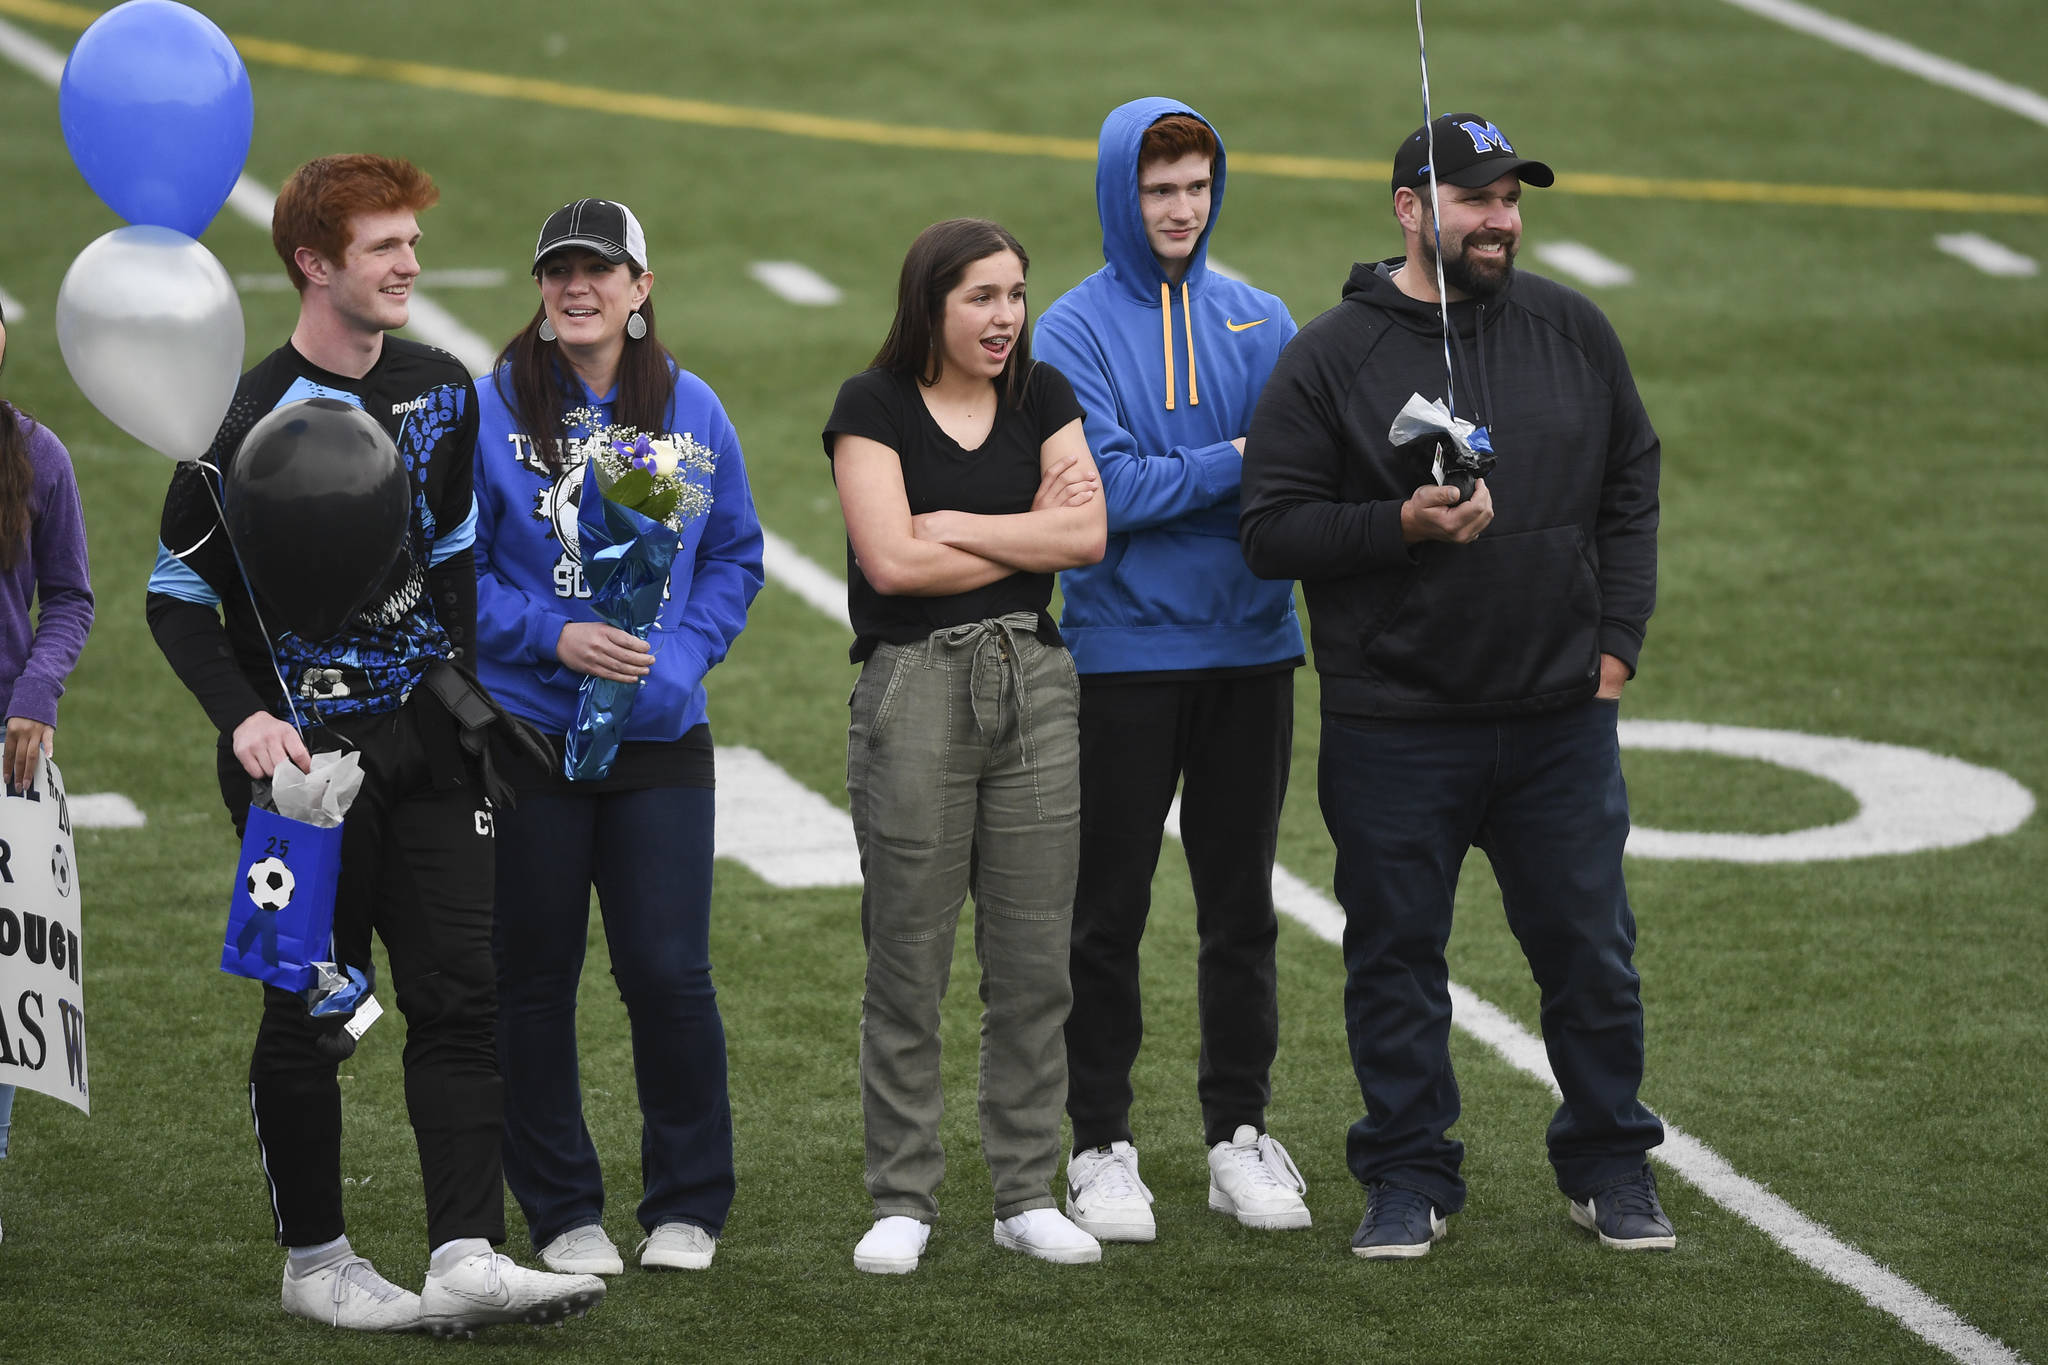 Thunder Mountain's Caleb Traxler celebrates Senior Night with his family at TMHS on Tuesday, May 14, 2019. (Michael Penn | Juneau Empire)